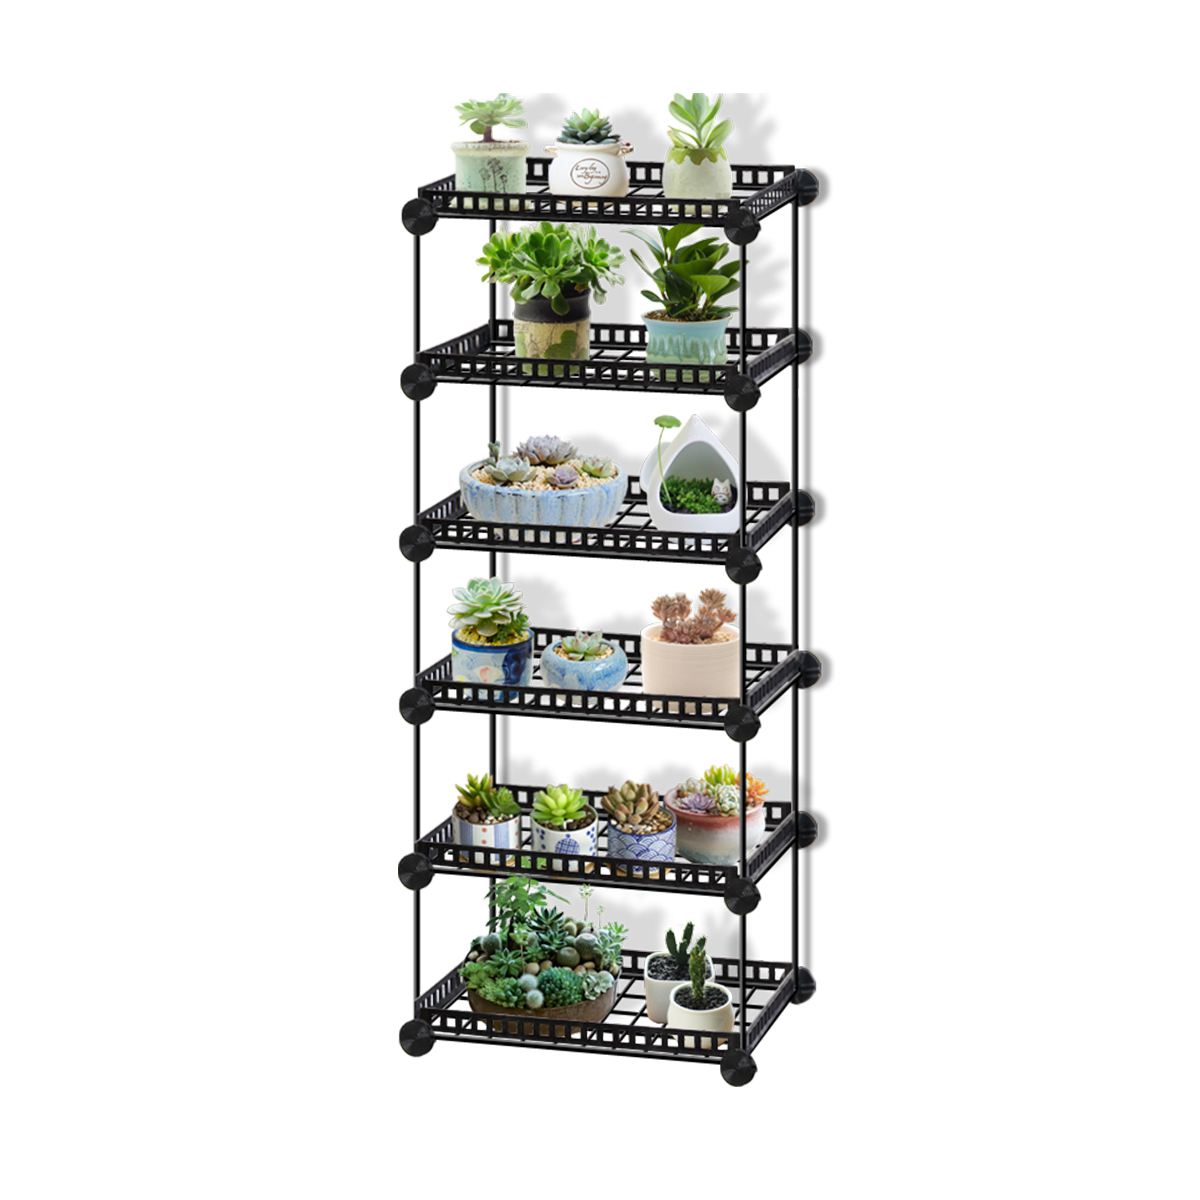 6/5/4/3 Tier Durable Metal Plant Shelves Flower Pot Holder Garden Rack Display Stand Succulent Plants Home Balcony Decoration